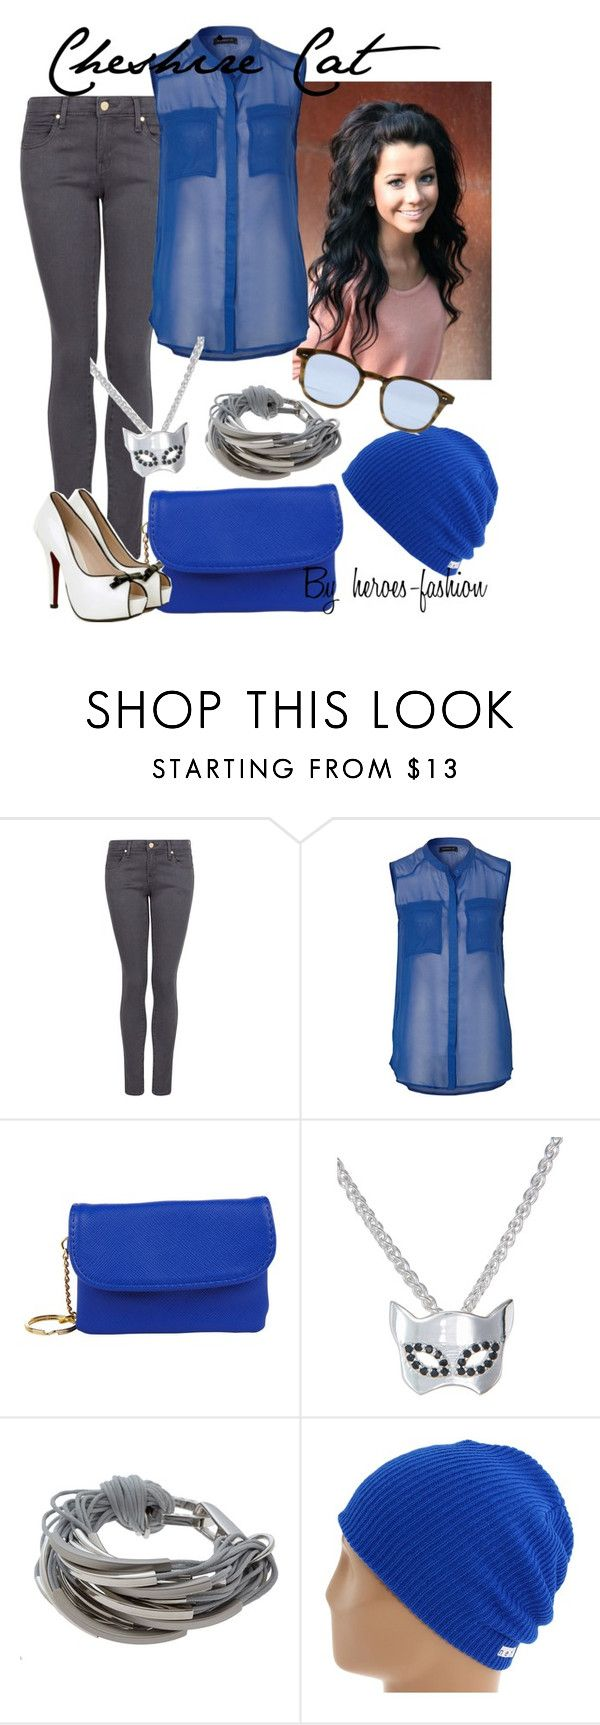 """""""Cheshire Cat"""" by heroes-fashion ❤ liked on Polyvore featuring MANGO, Modström, christopher. kon, Zoe & Morgan, Armani Exchange, Neff and Garrett Leight"""